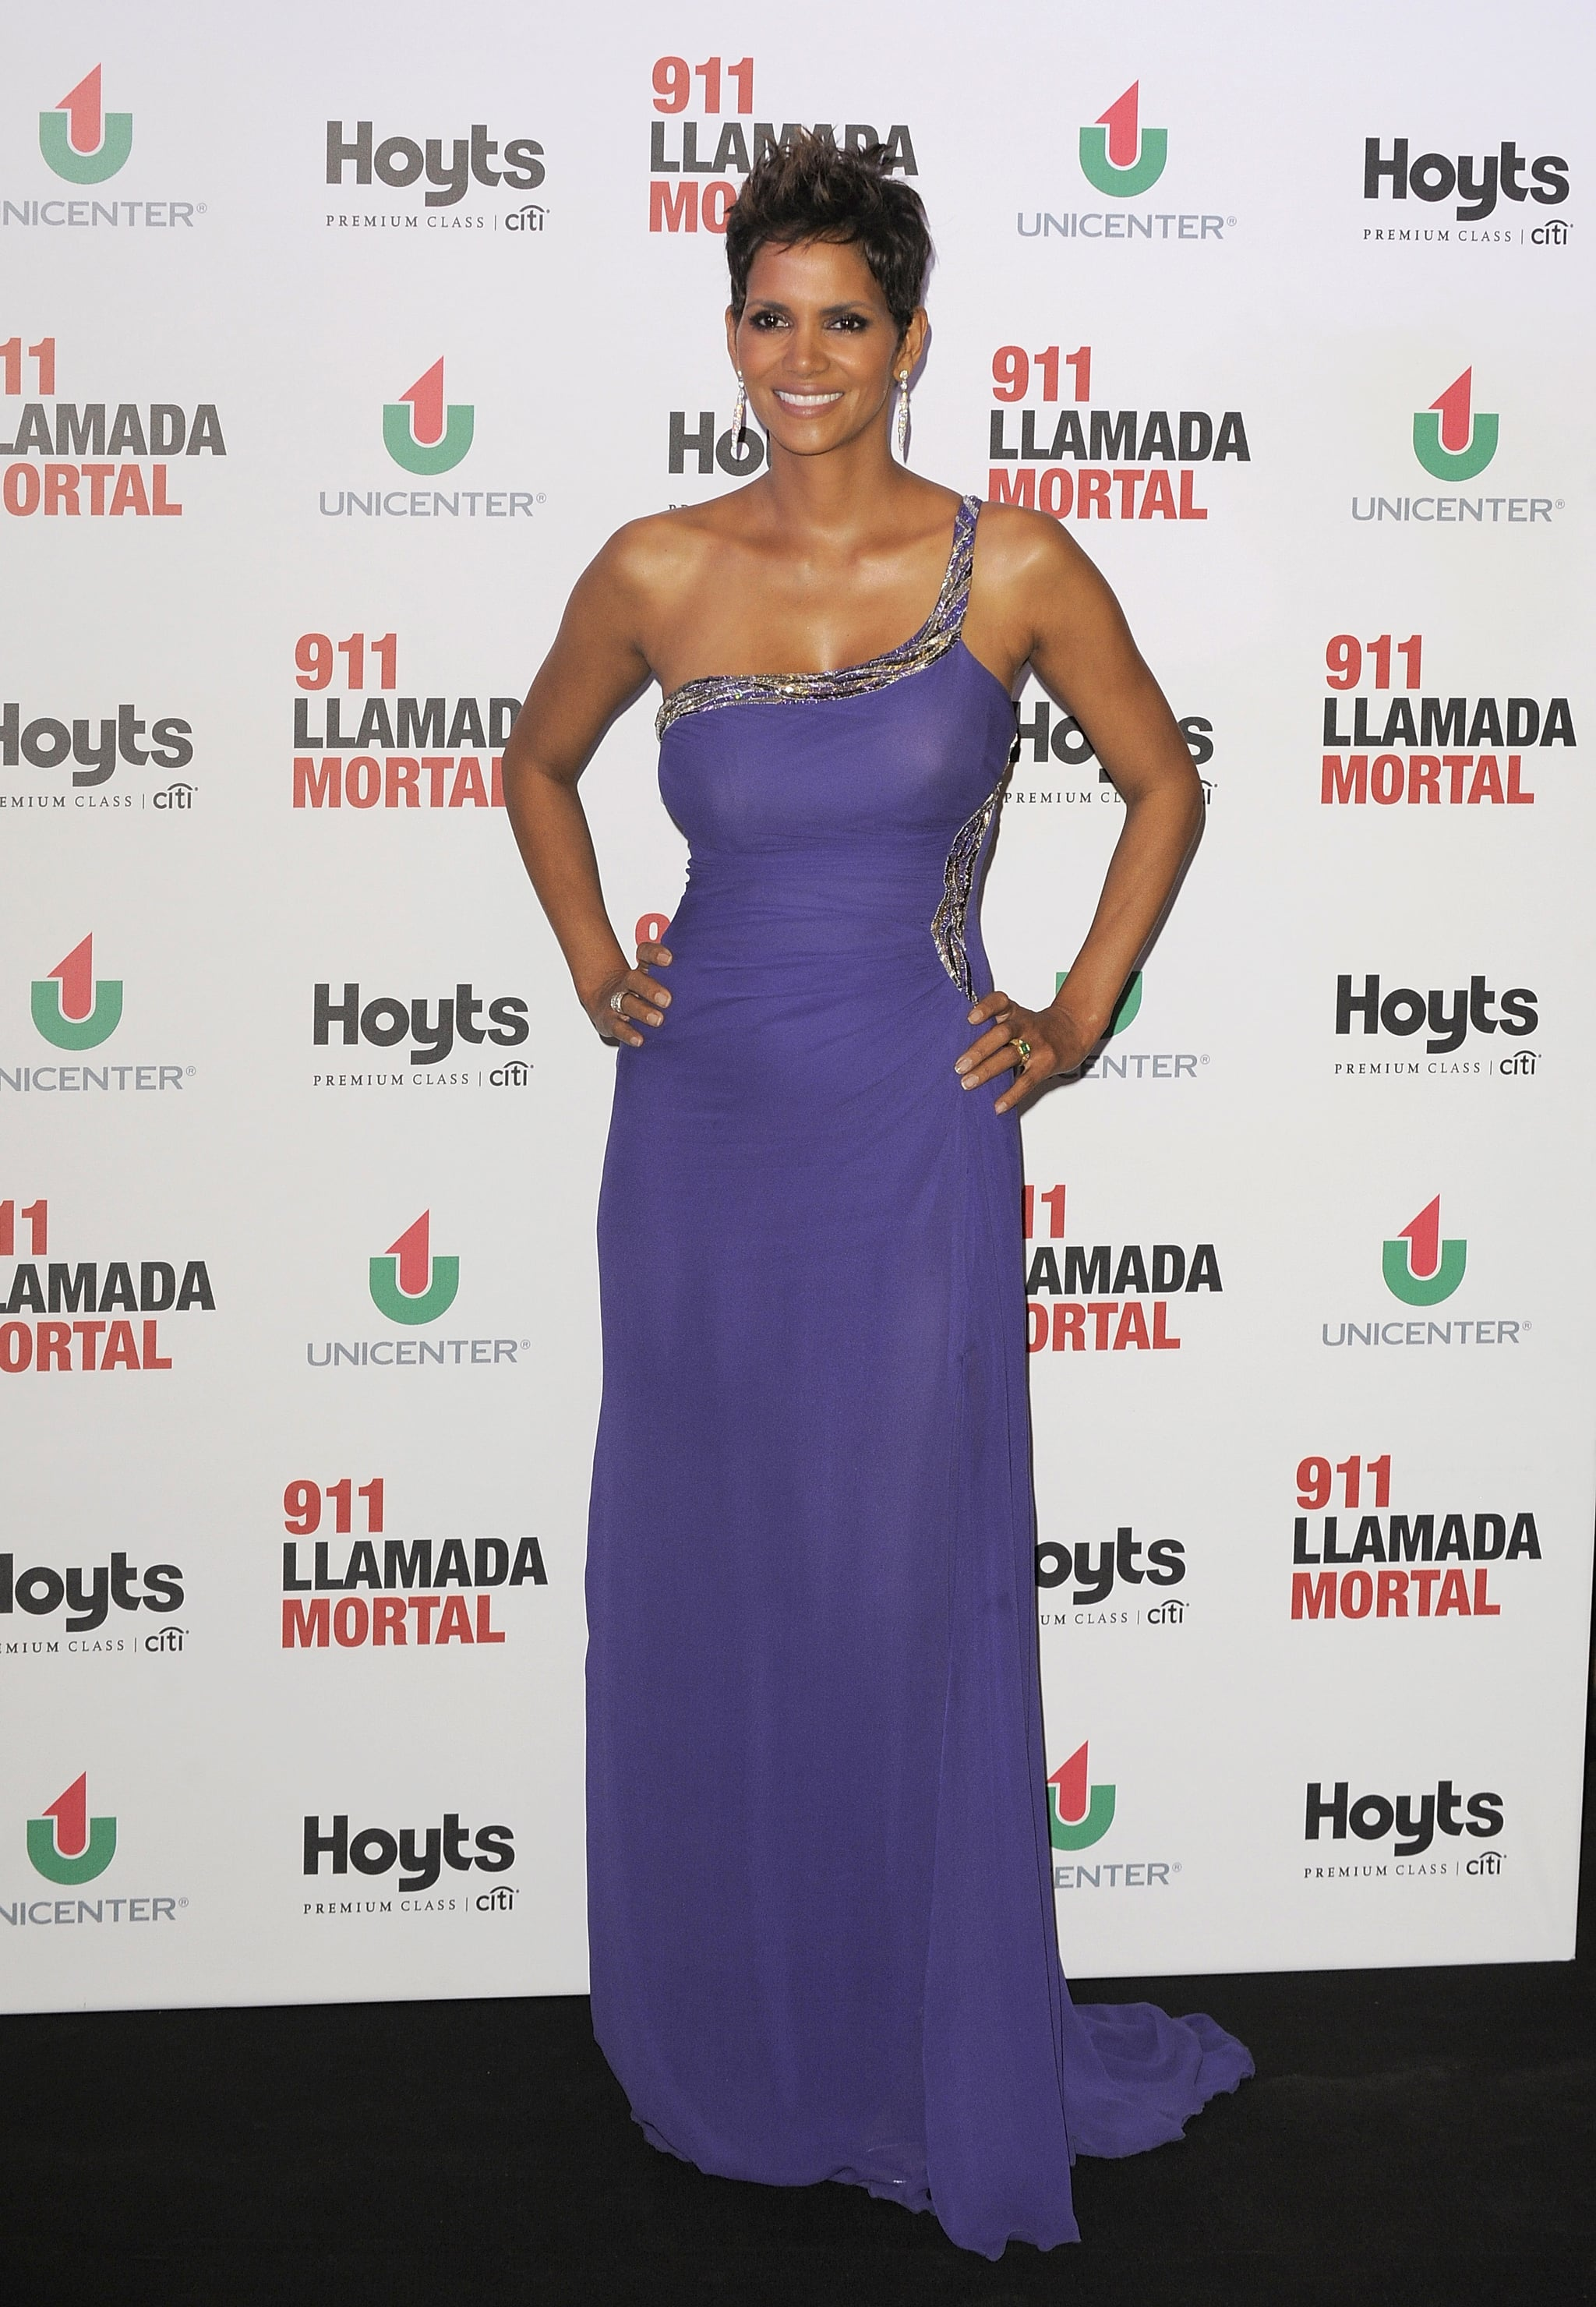 Promoting The Call, Halle looked red carpet fabulous in a perfectly fitting purple gown.